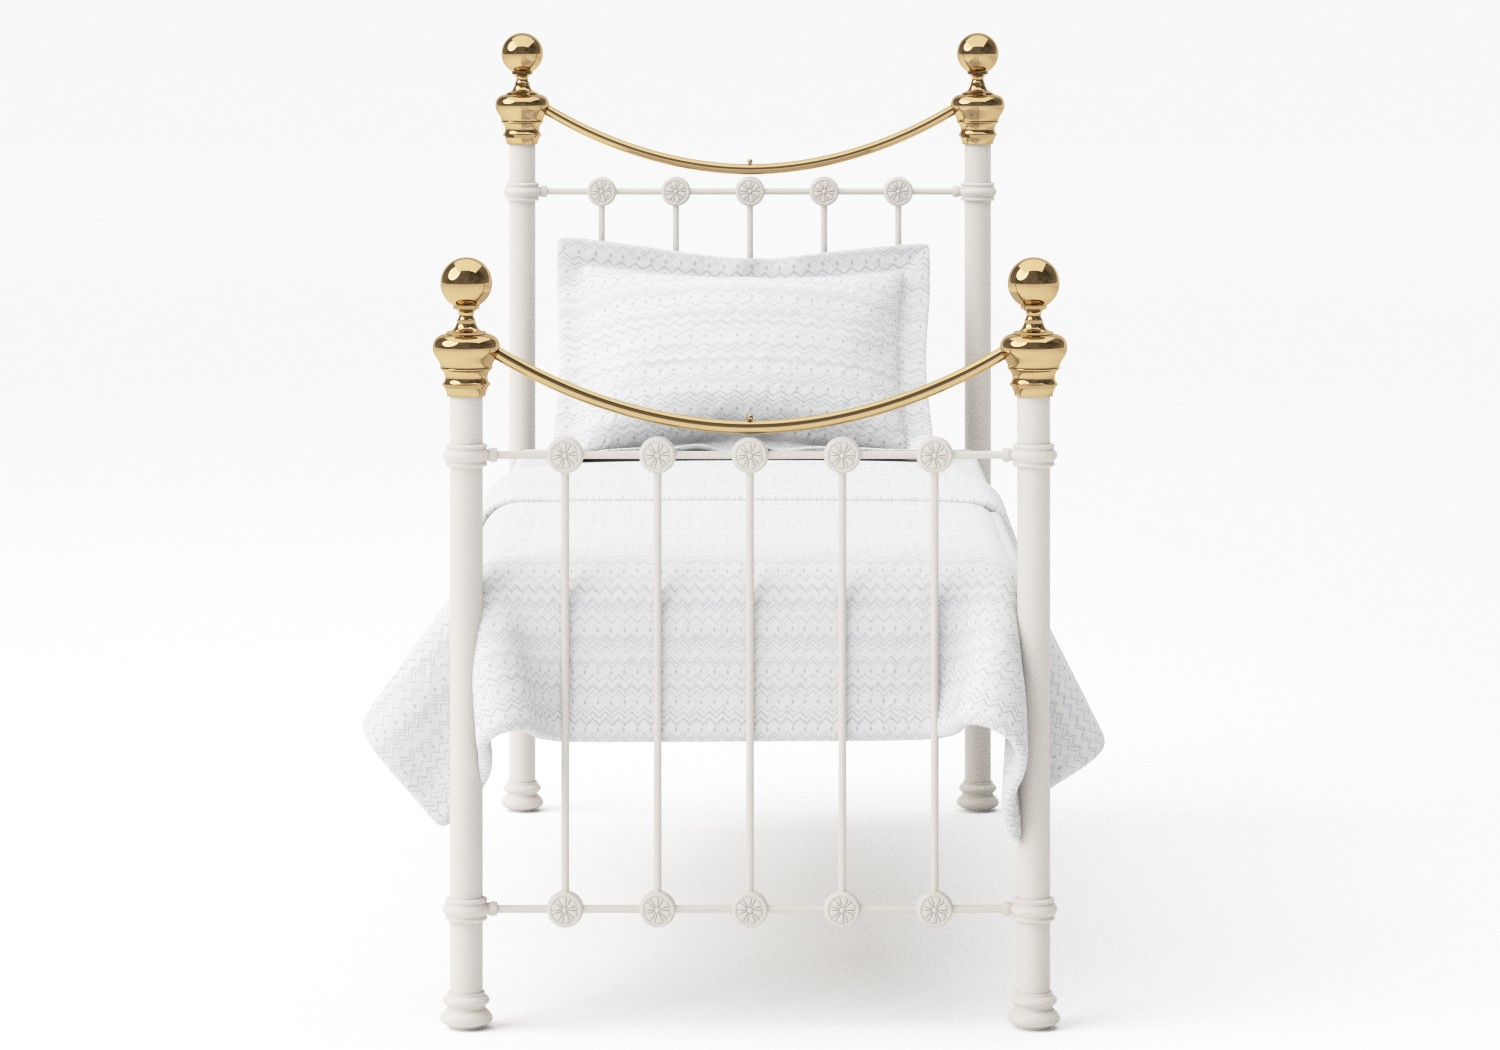 Selkirk Single Iron/Metal Bed in Glossy Ivory with Brass details shown with Juno 1 mattress